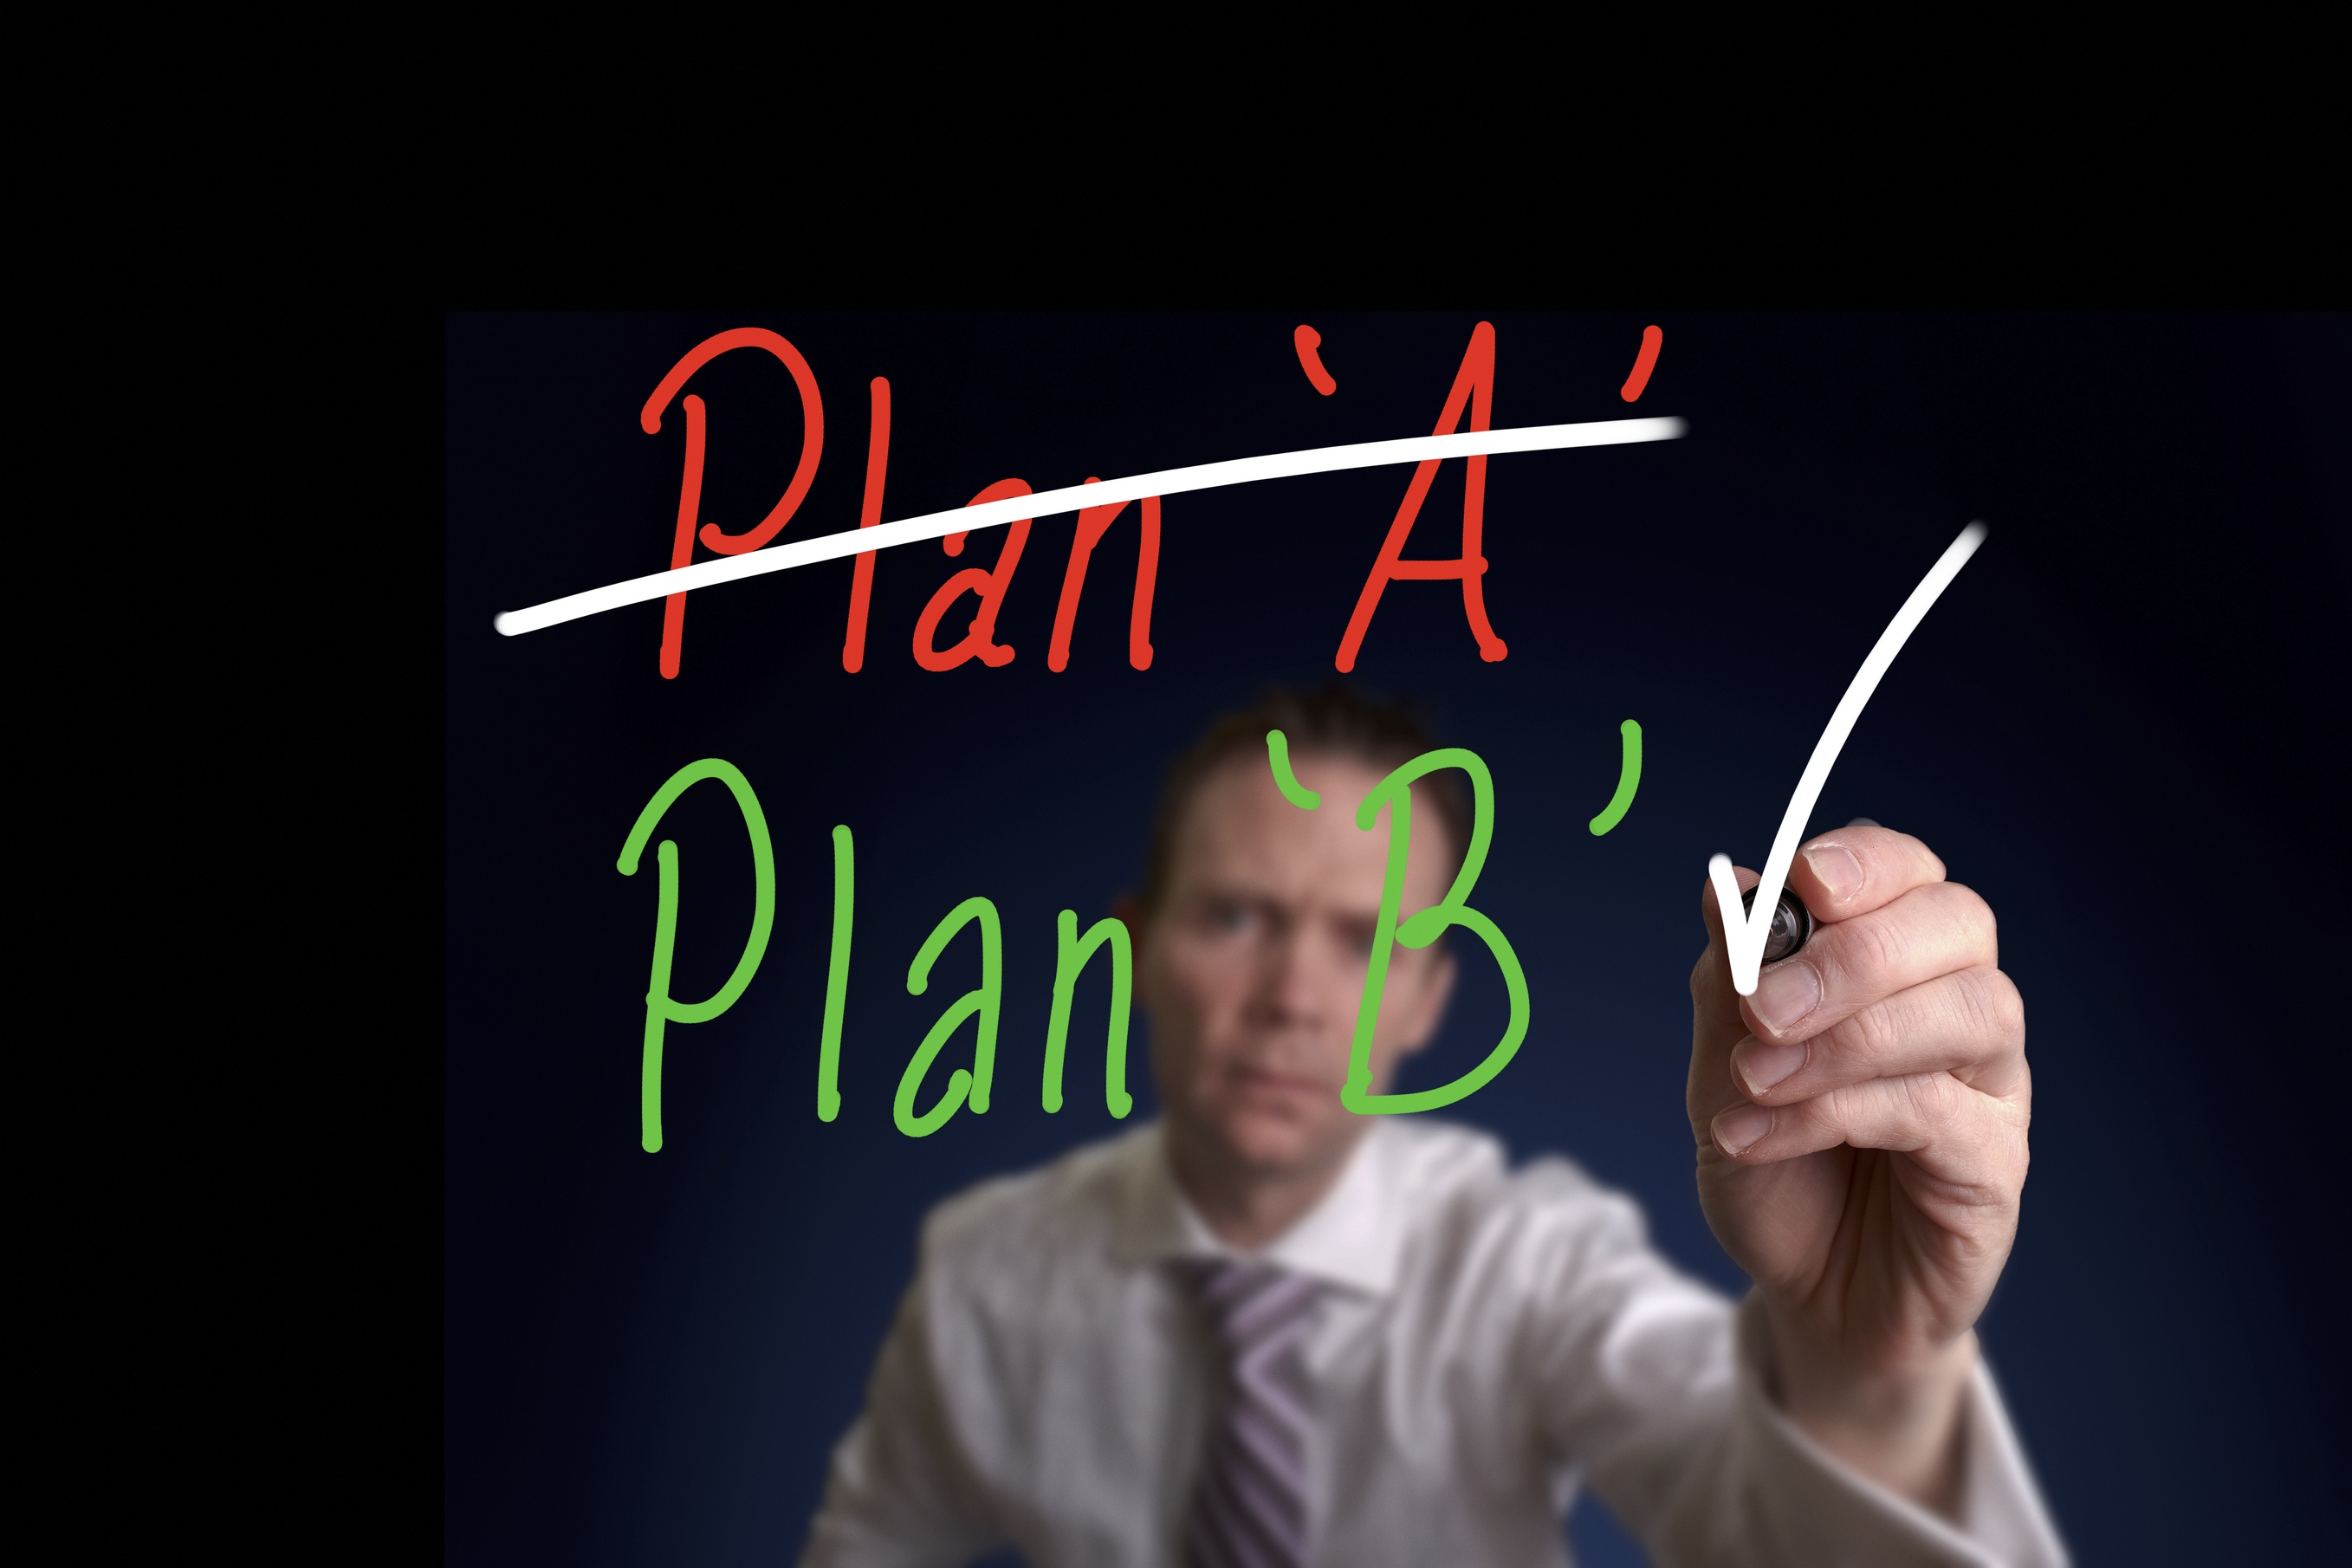 Being adaptable when Plan A changes to Plan B